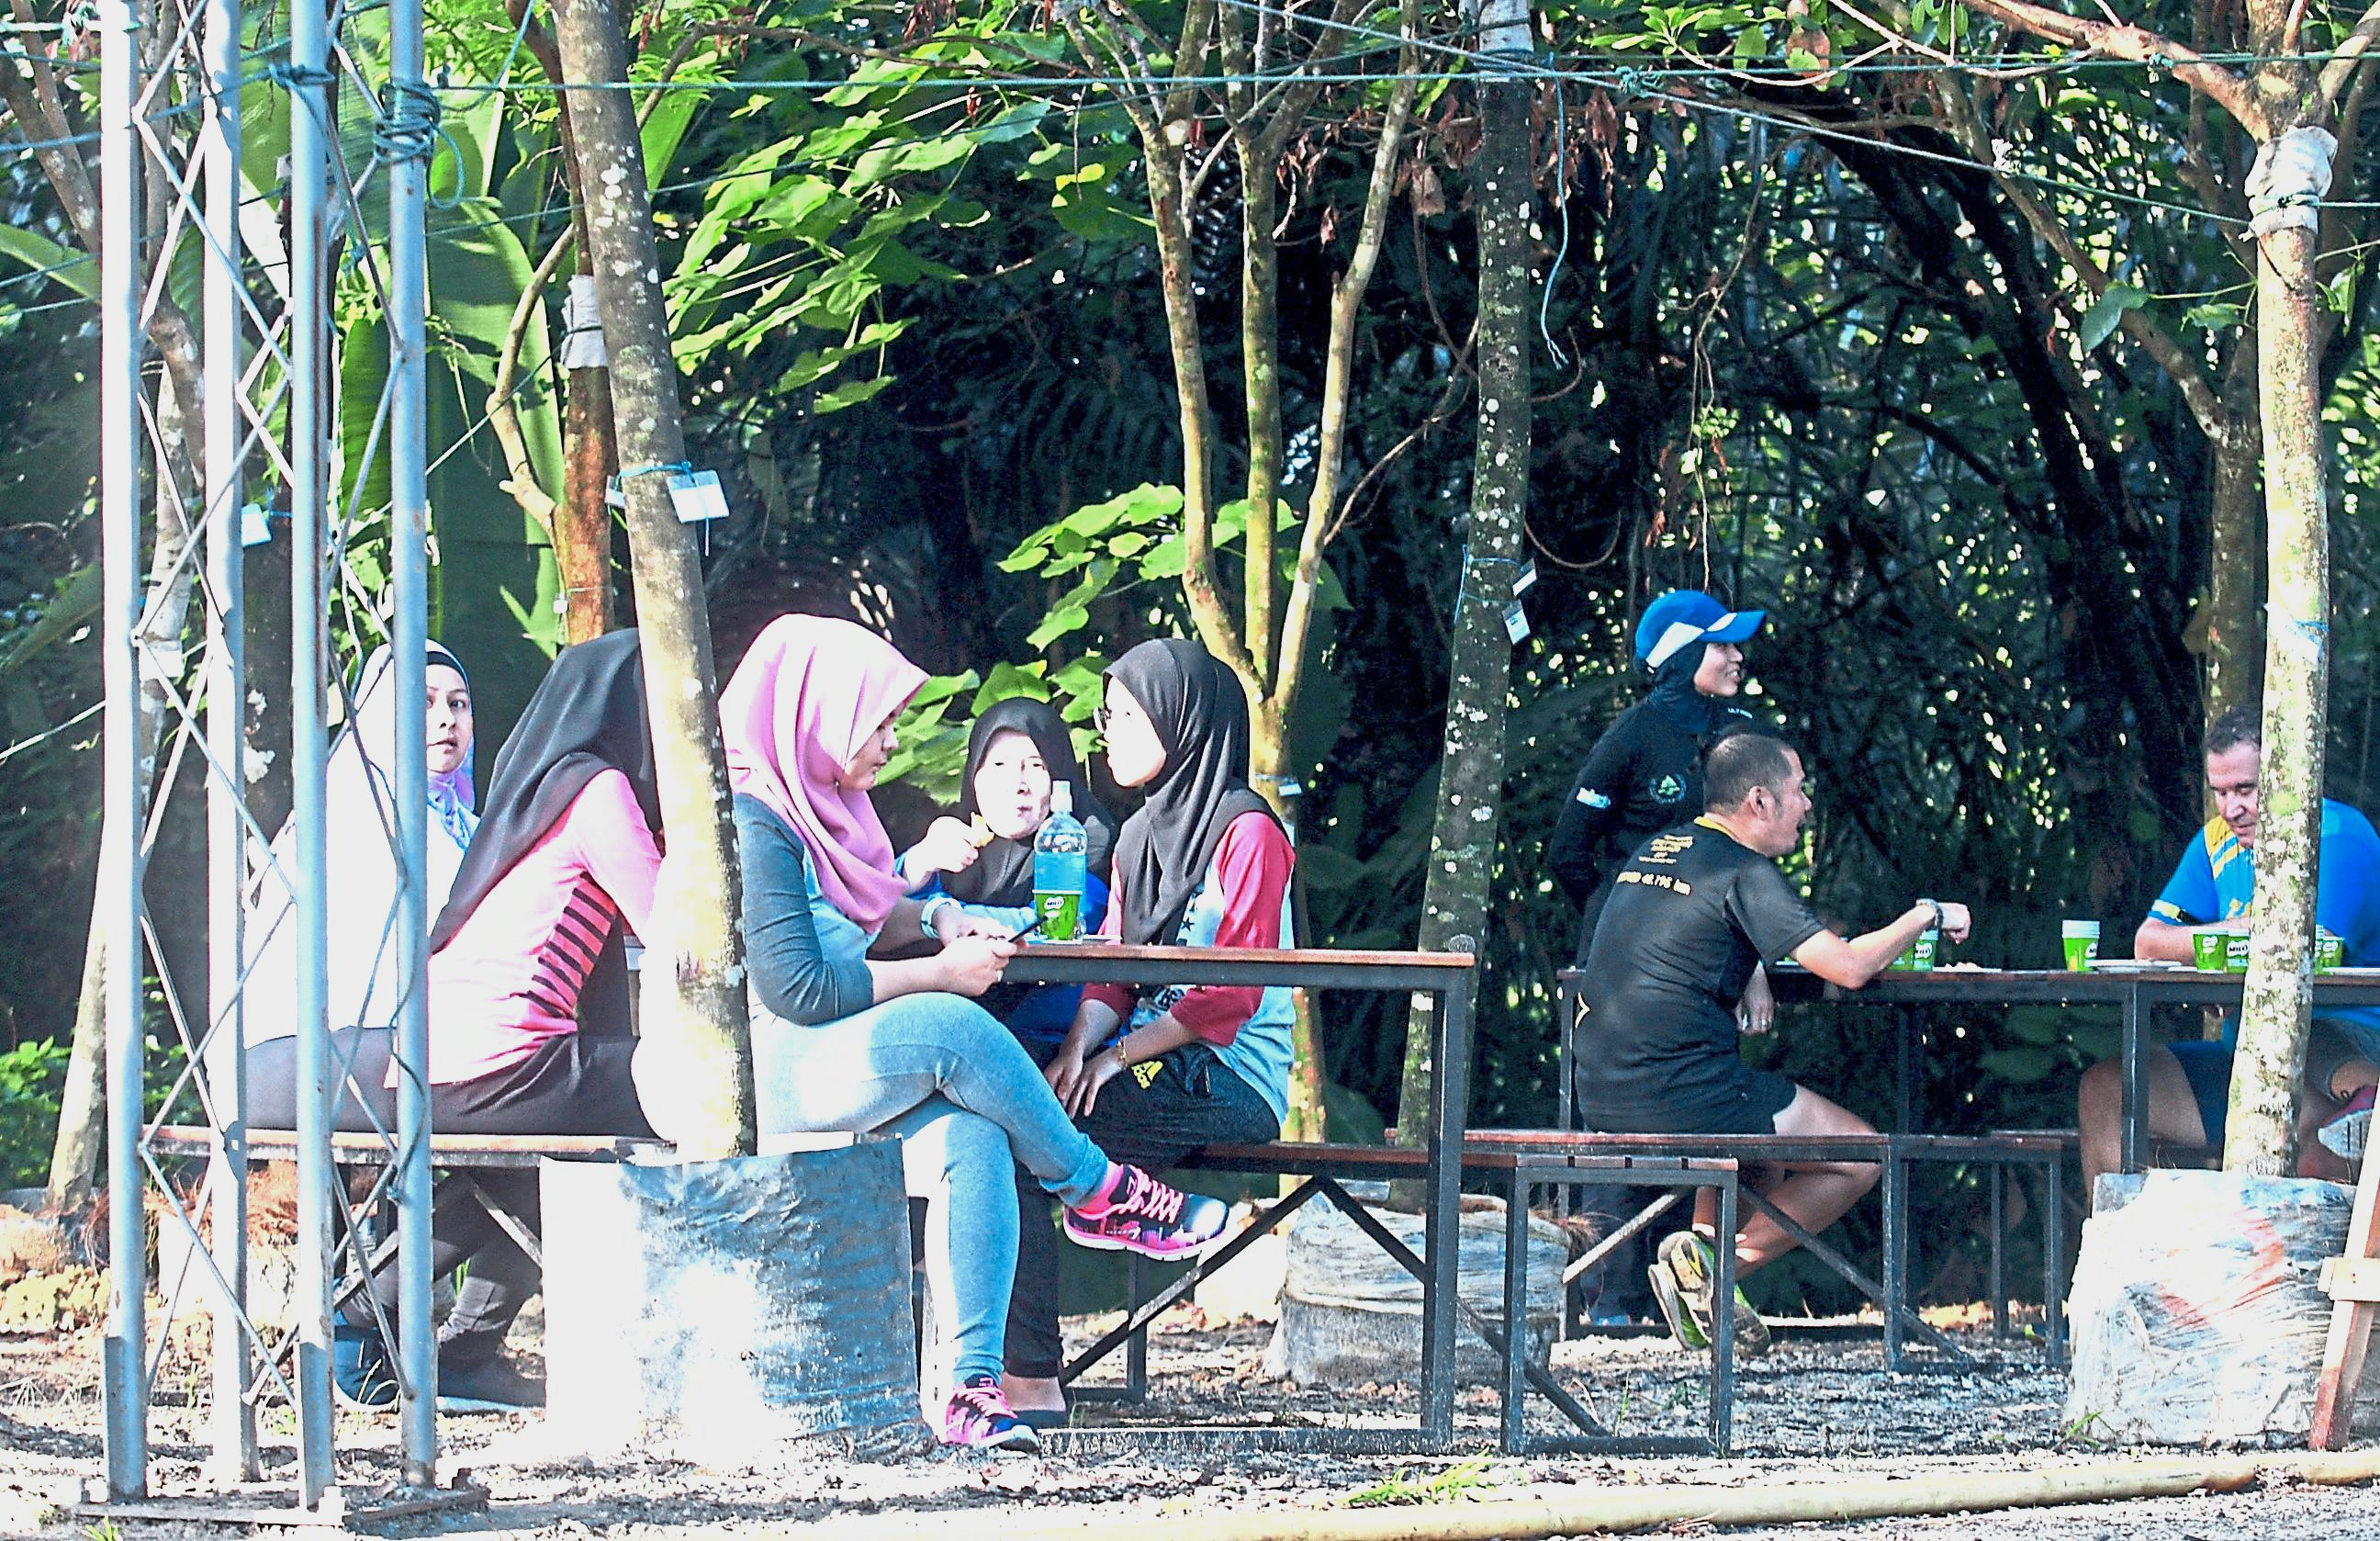 A group of visitors chilling out under the green canopy of Taman Tugu.